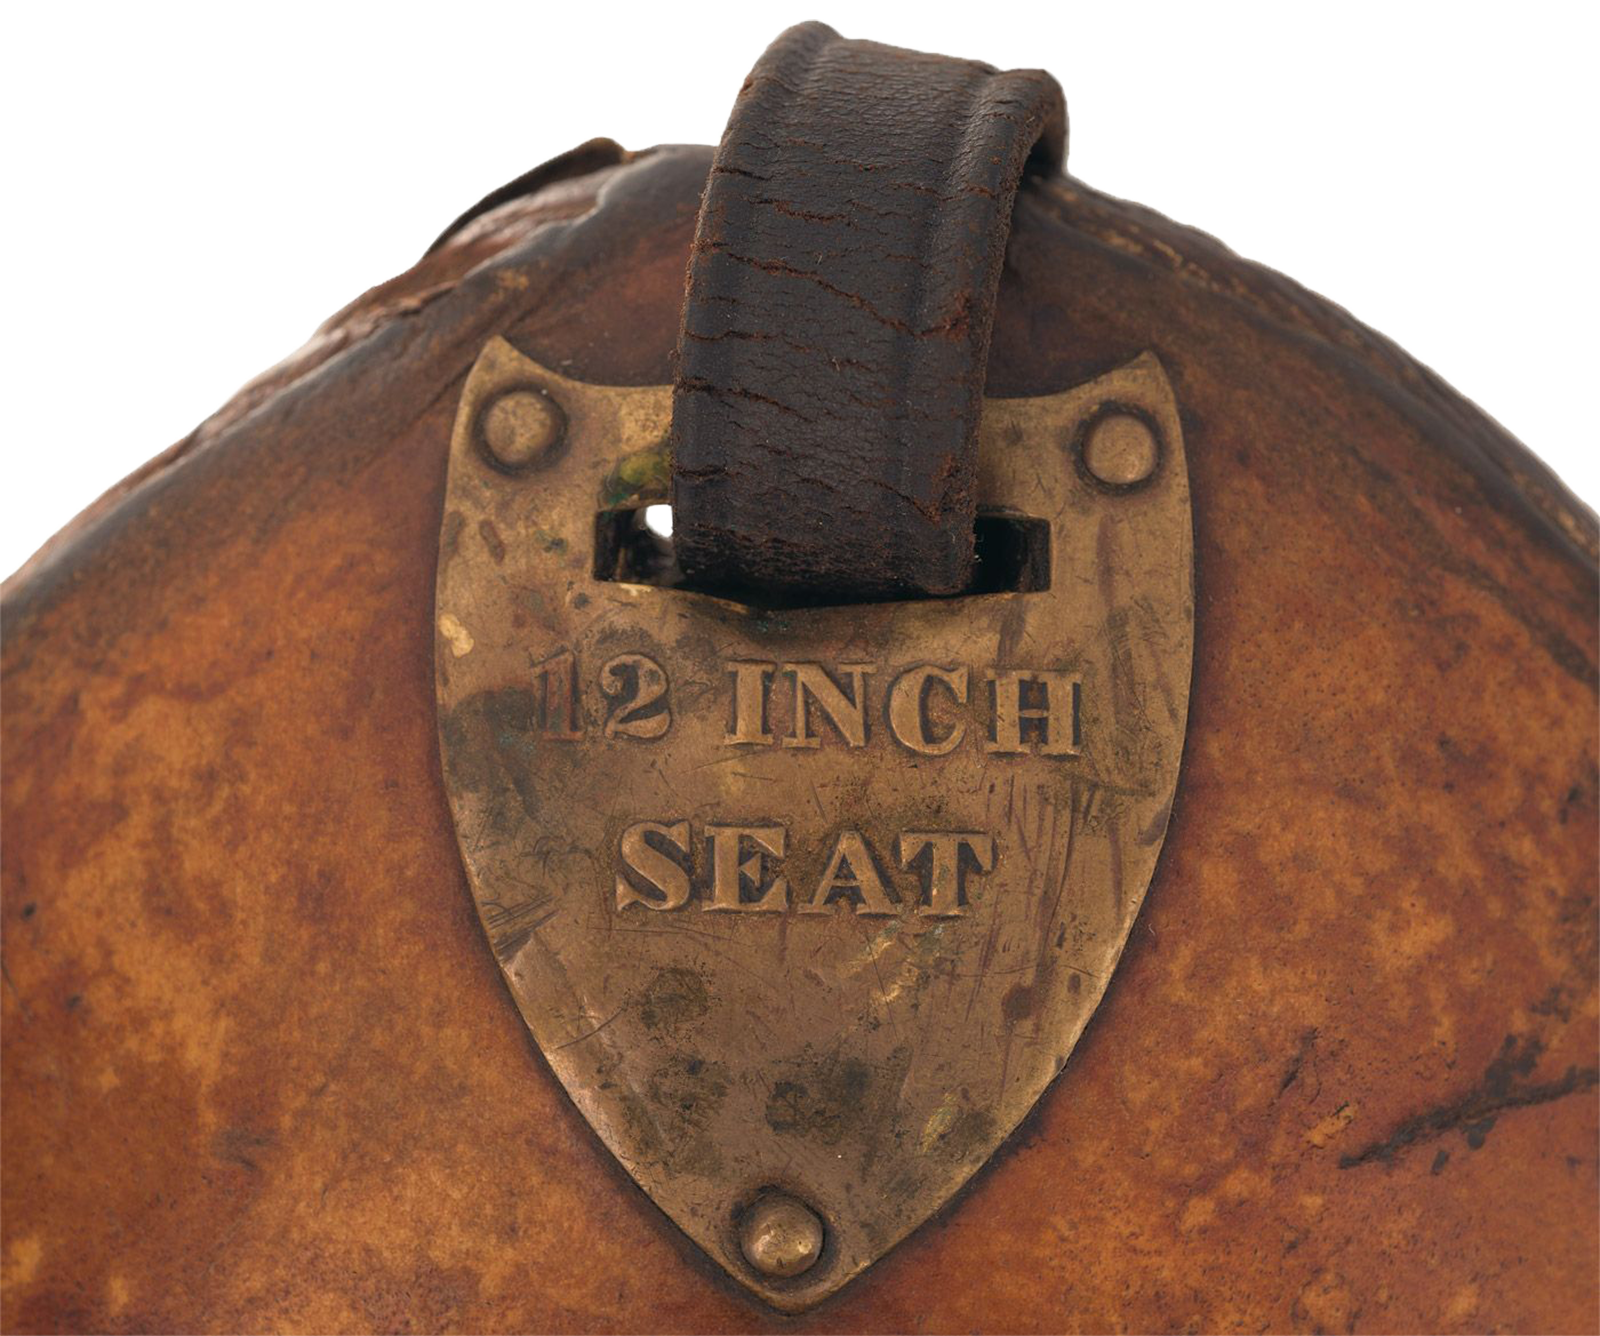 McClellan saddle pommel shield, aged and worn, with 12 inch seat stamped into the medal.